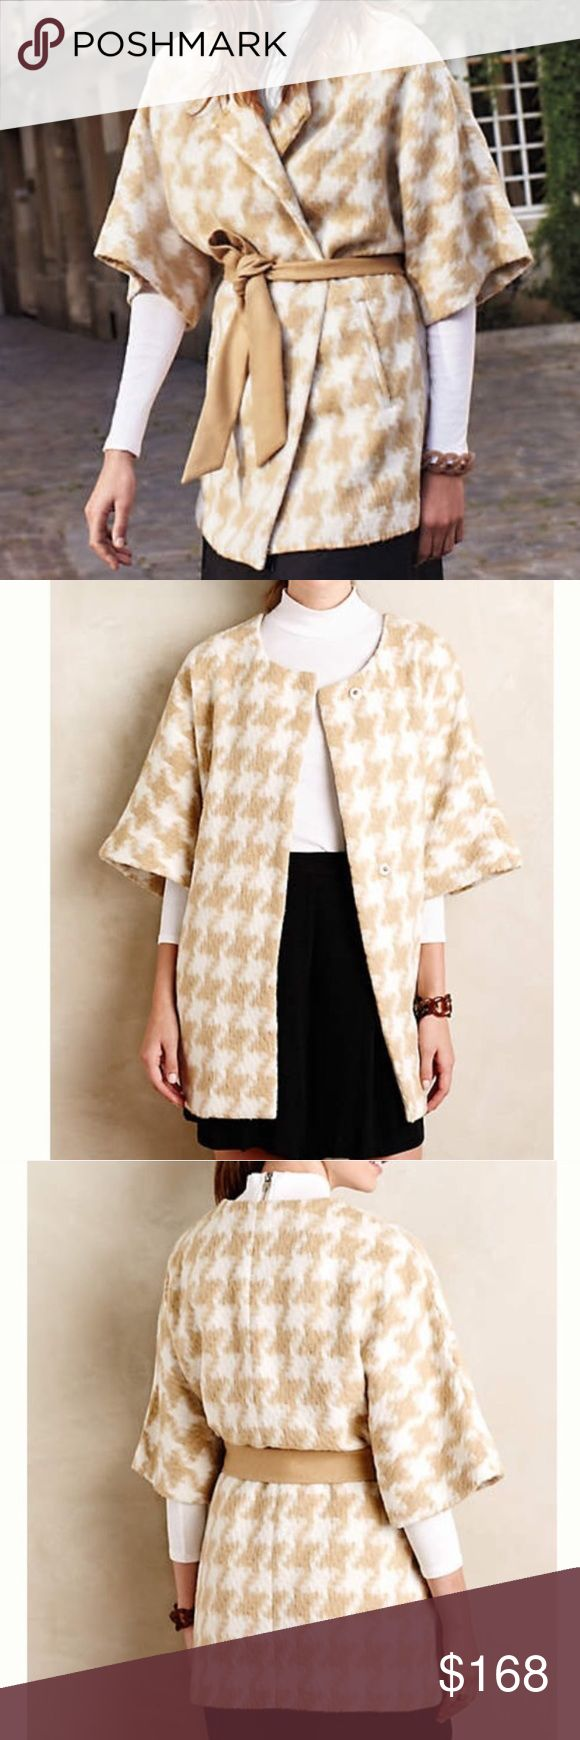 Anthroplogie Houndstooth wrap coat Houndstooth wrap coat- is kimono style but not exactly. It has buttons and can be worn many different ways. This is bnwt, never worn and has no blemishes of any kind. We love this as a fall staple that can transition through winter and spring as well. Classy houndstooth in beige and creamy white is fabulous! Can answer any questions. No returns ✨ Anthropologie Jackets & Coats